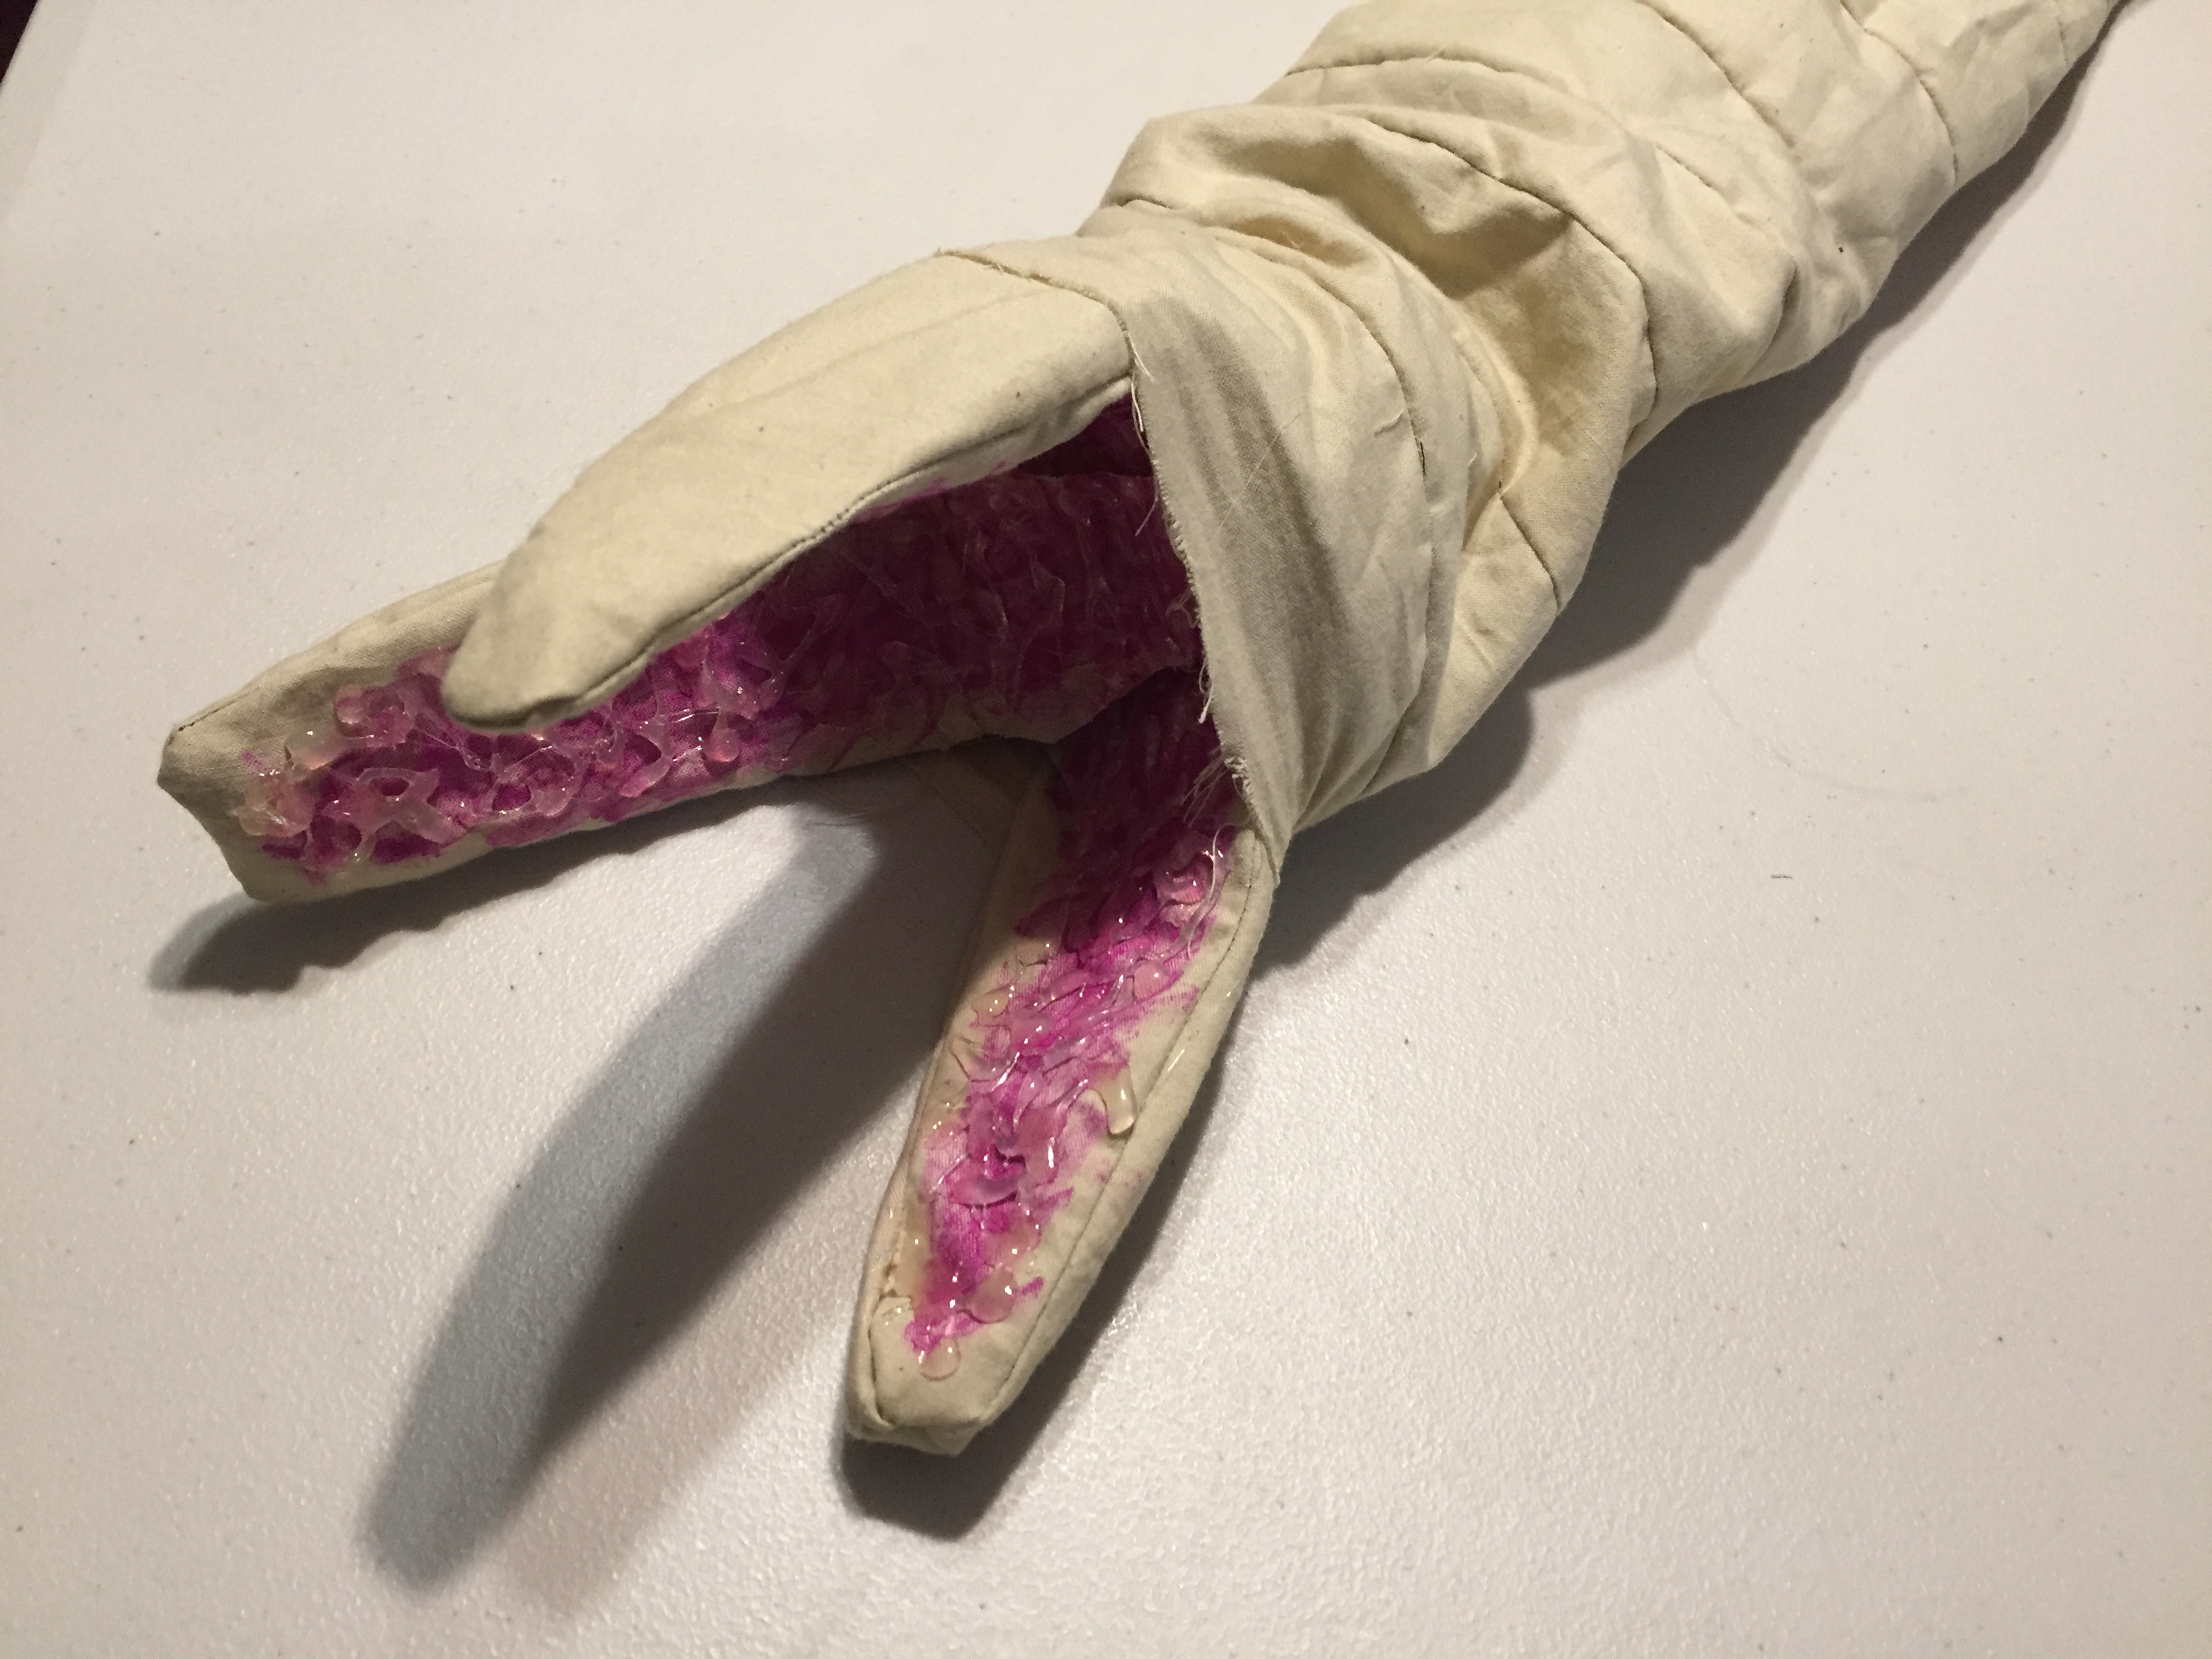 Picture of Dune Shai Hulud Sandworm Puppet